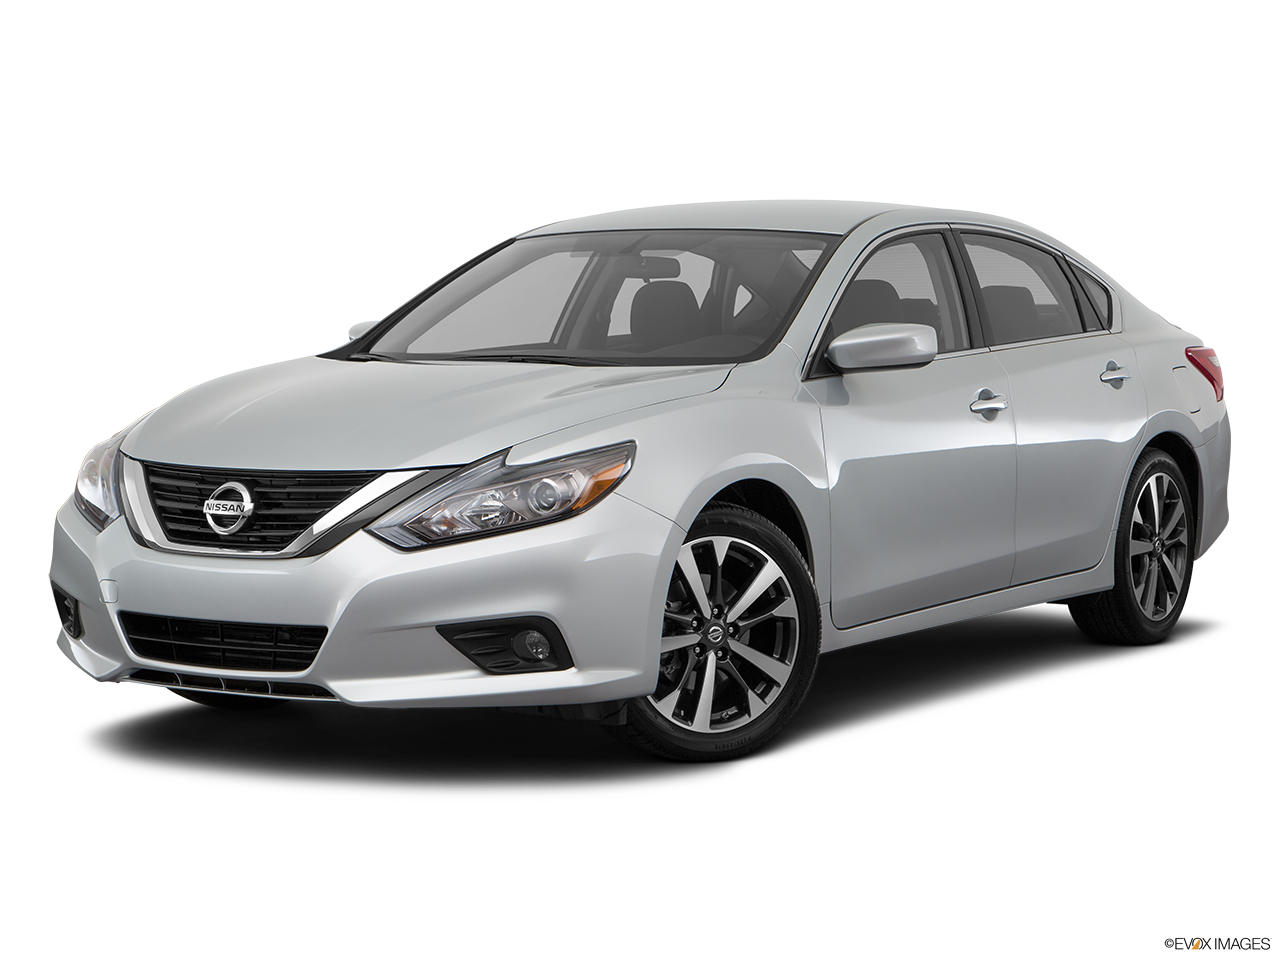 Test Drive A 2017 Nissan Altima® at Palm Springs Nissan